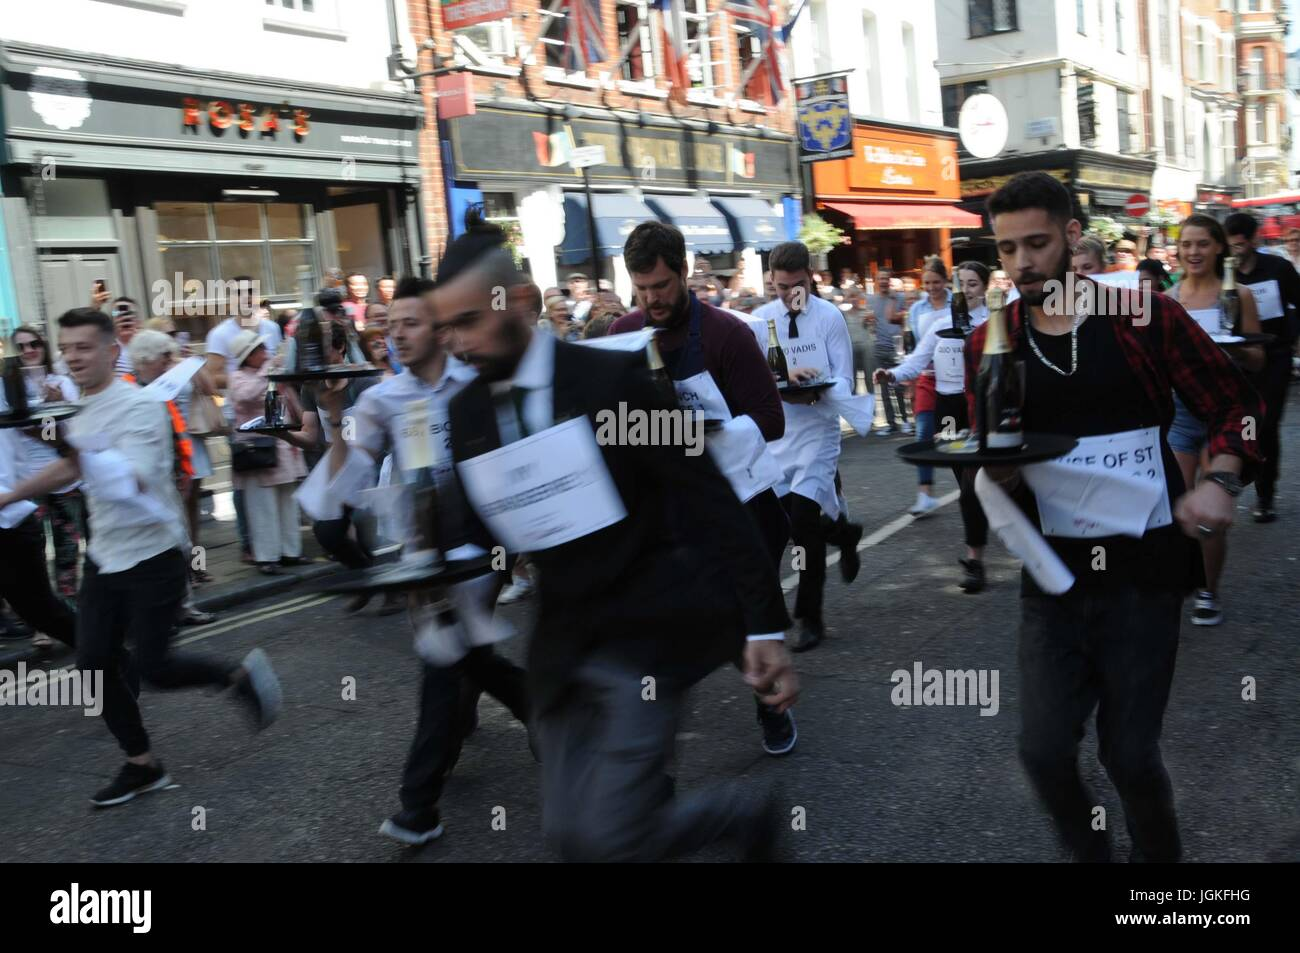 The 2017, Soho waiters race. - Stock Image